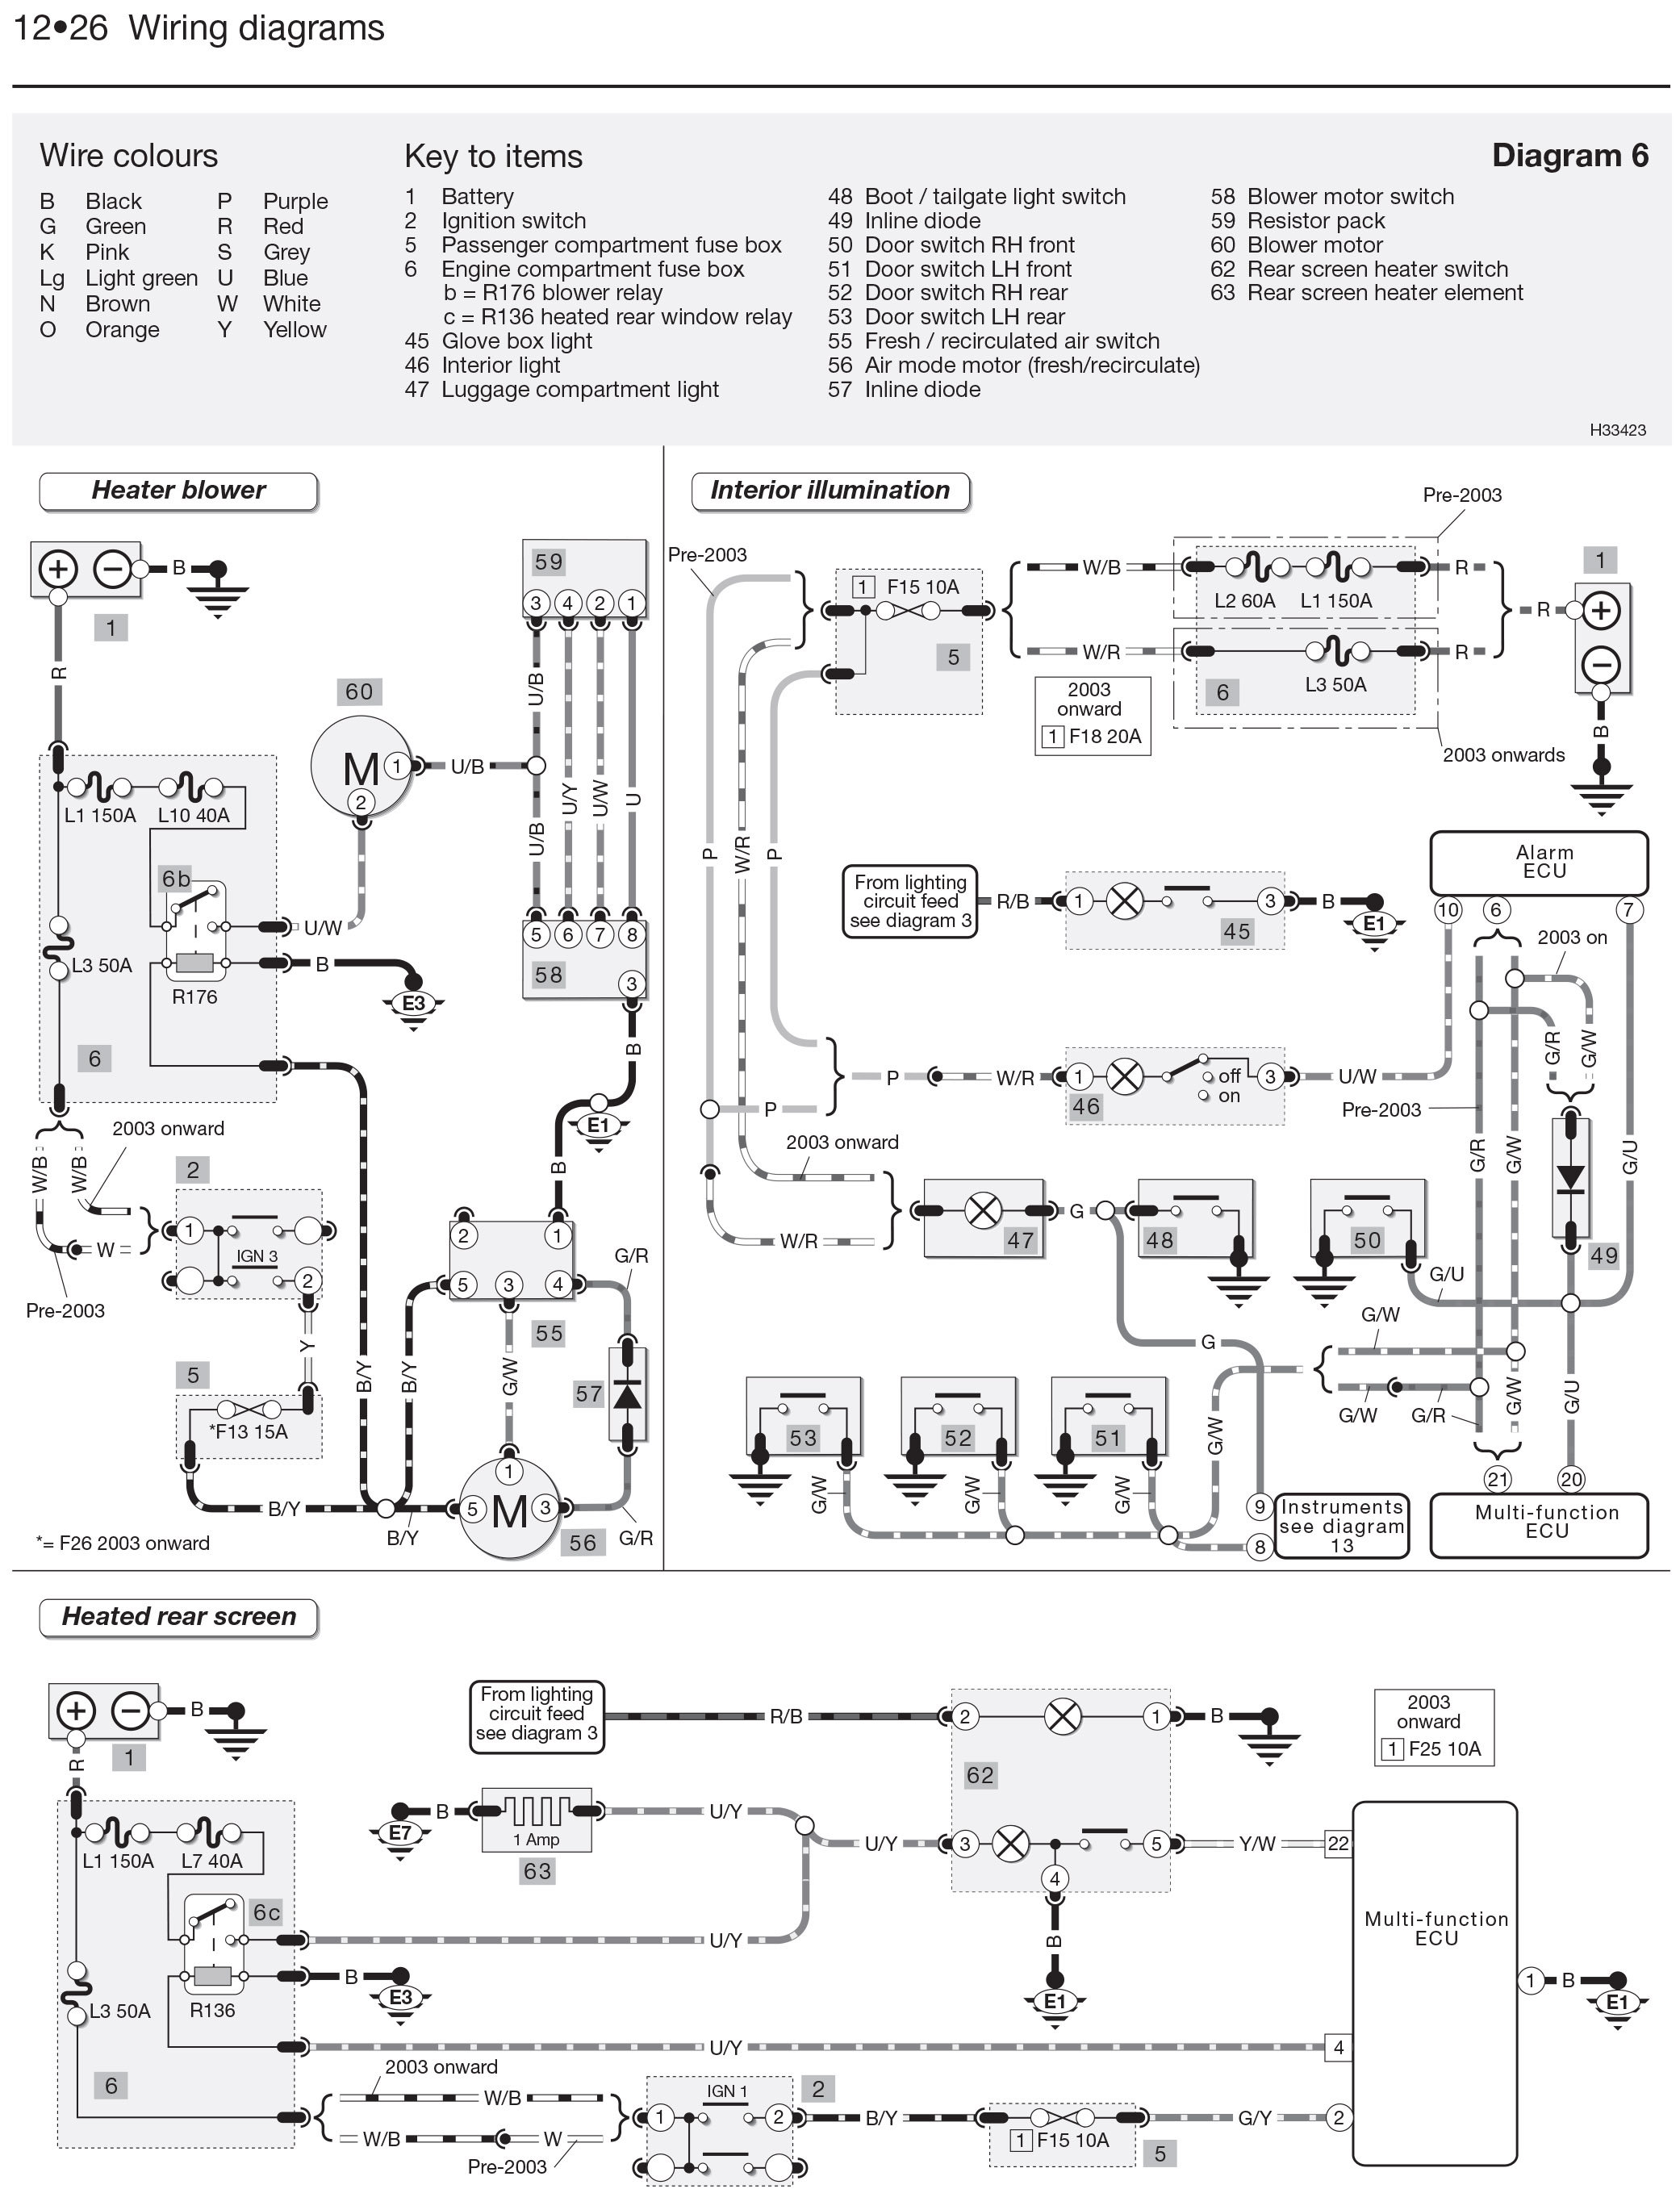 [WQZT_9871]  Wiring Diagram For Rover 45 Basic Race Car Chasis Wiring Schematic - fisher- wire.pisang.astrea-construction.fr | Rover 45 Audio Wiring Diagram |  | Begeboy Wiring Diagram Source - astrea-construction.fr